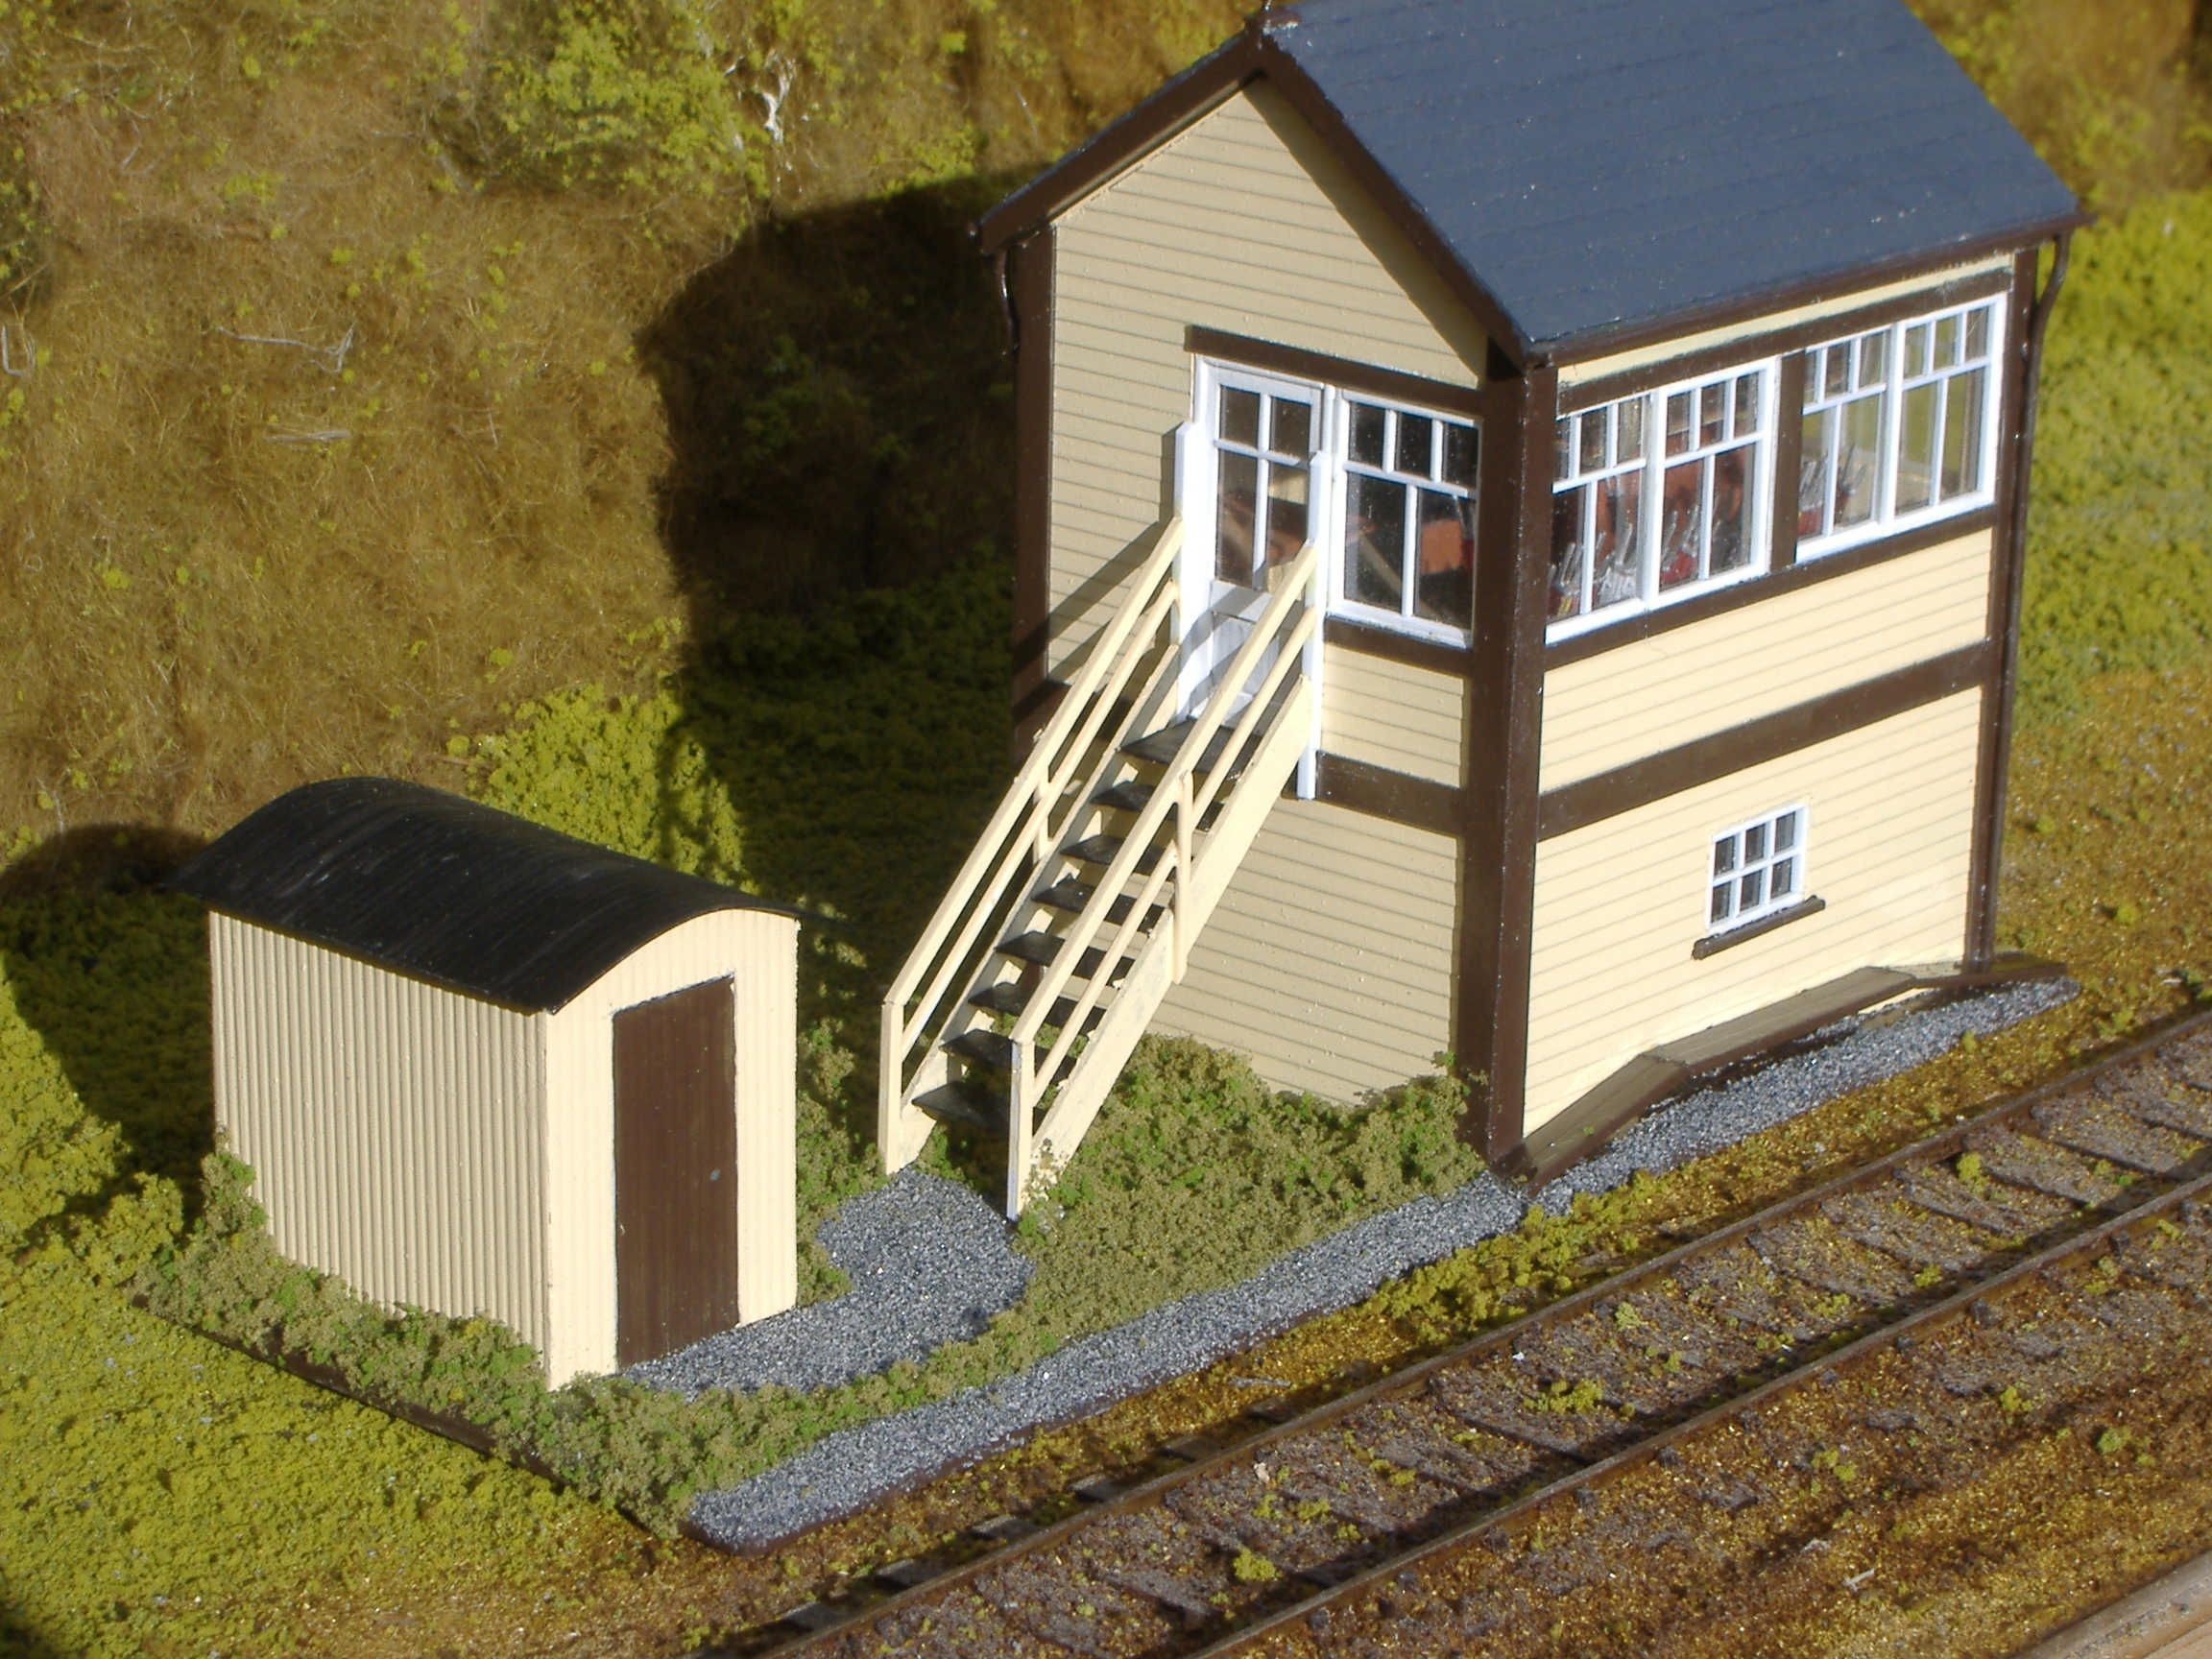 Model Railway Buildings